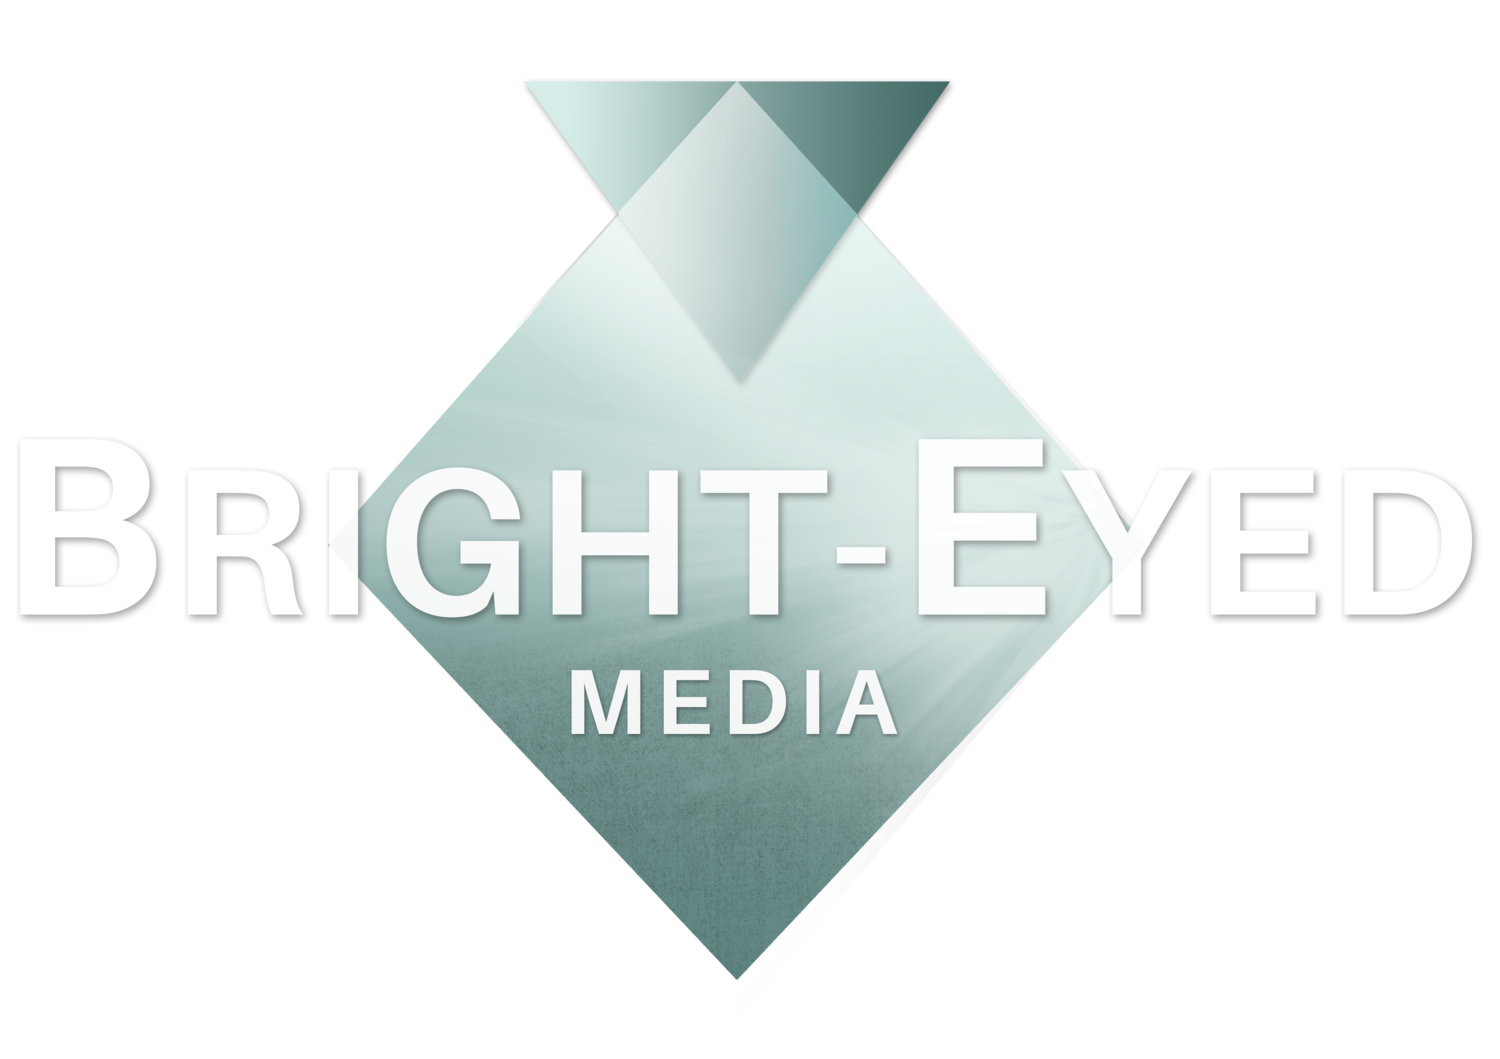 Bright-Eyed Media, Inc.